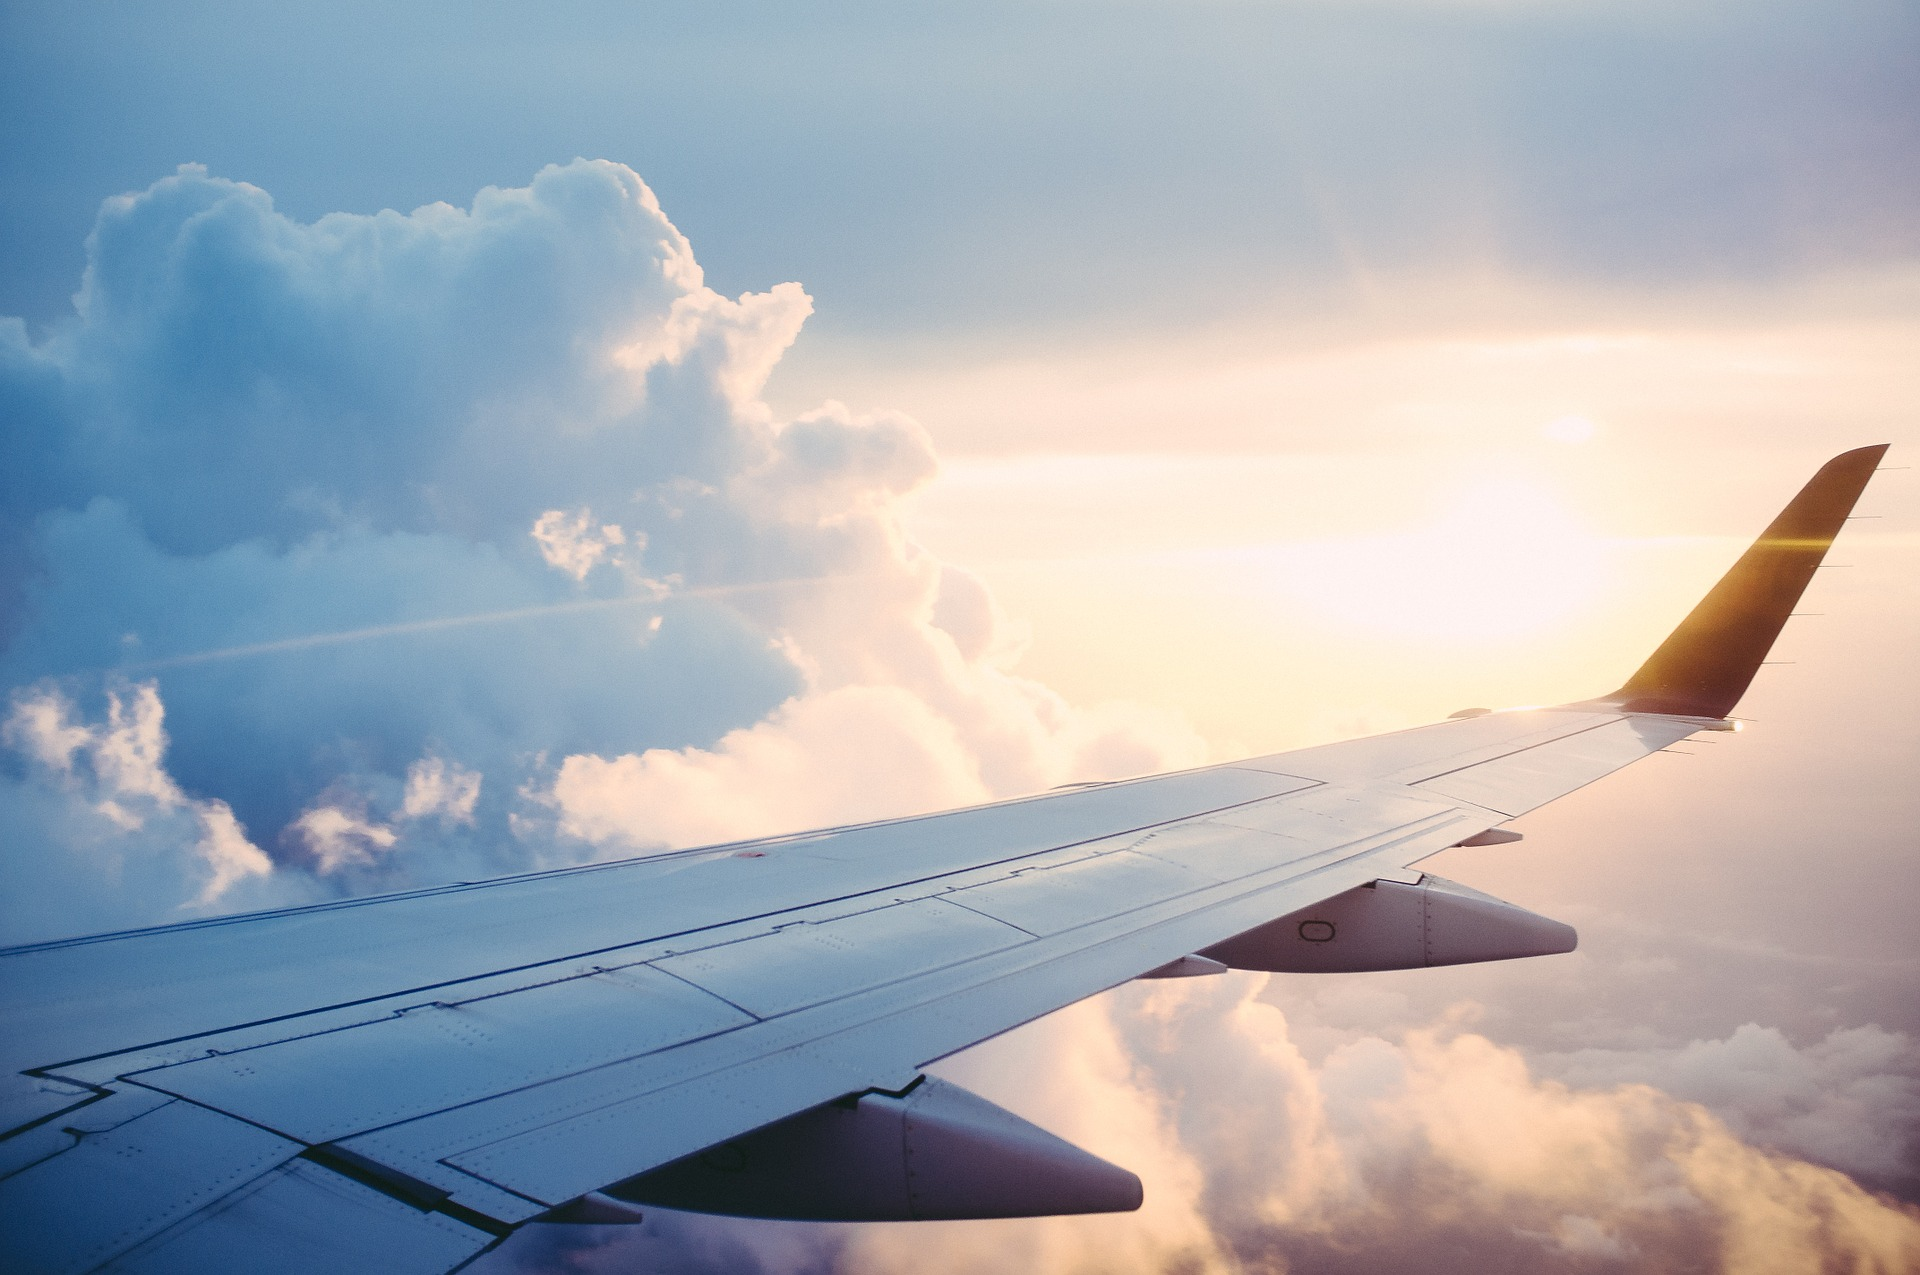 View from an airplane window. Photo by Free-Photos on Pixabay.